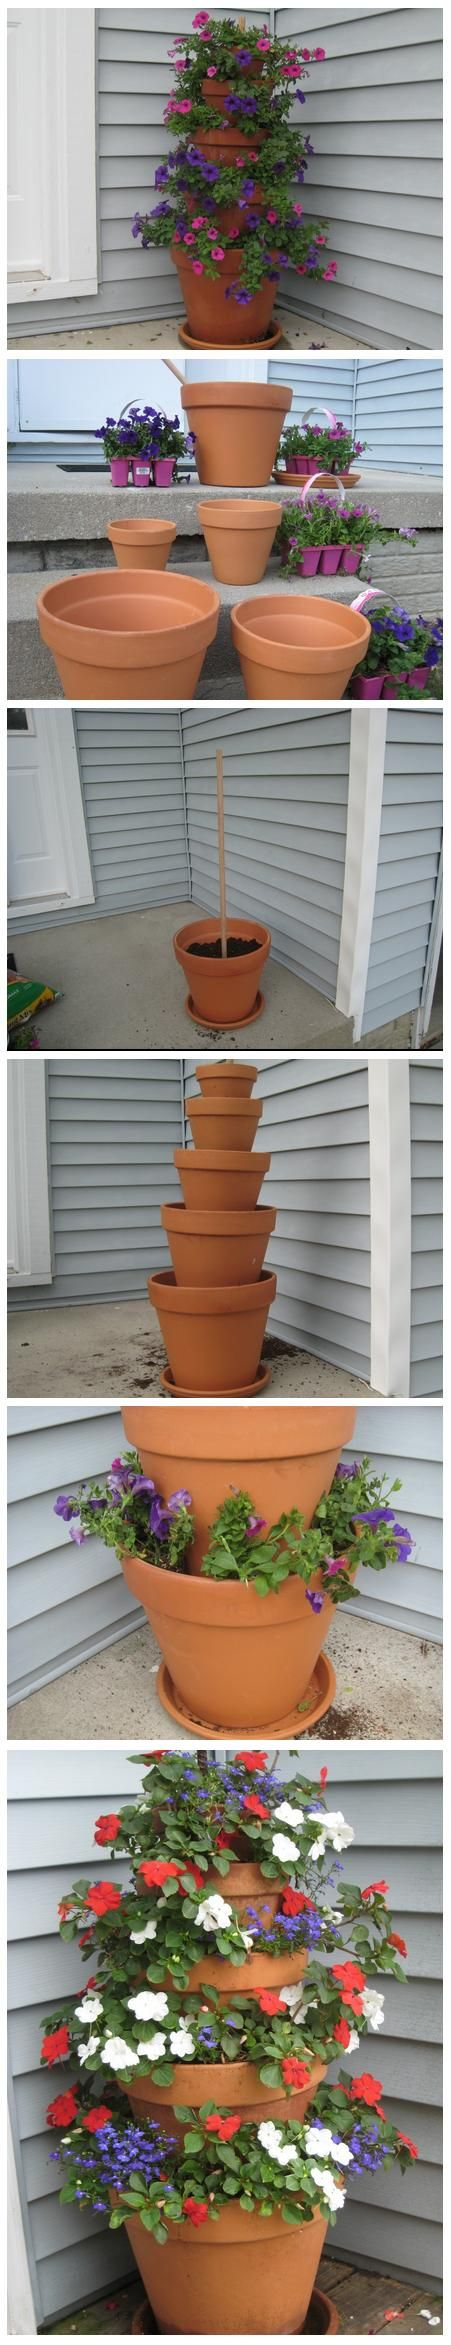 Flower coupon Cotta Terra     dunk sale Terra Tips Annuals    Tower Tower  Flower with Pot and Cotta Towers Gardening